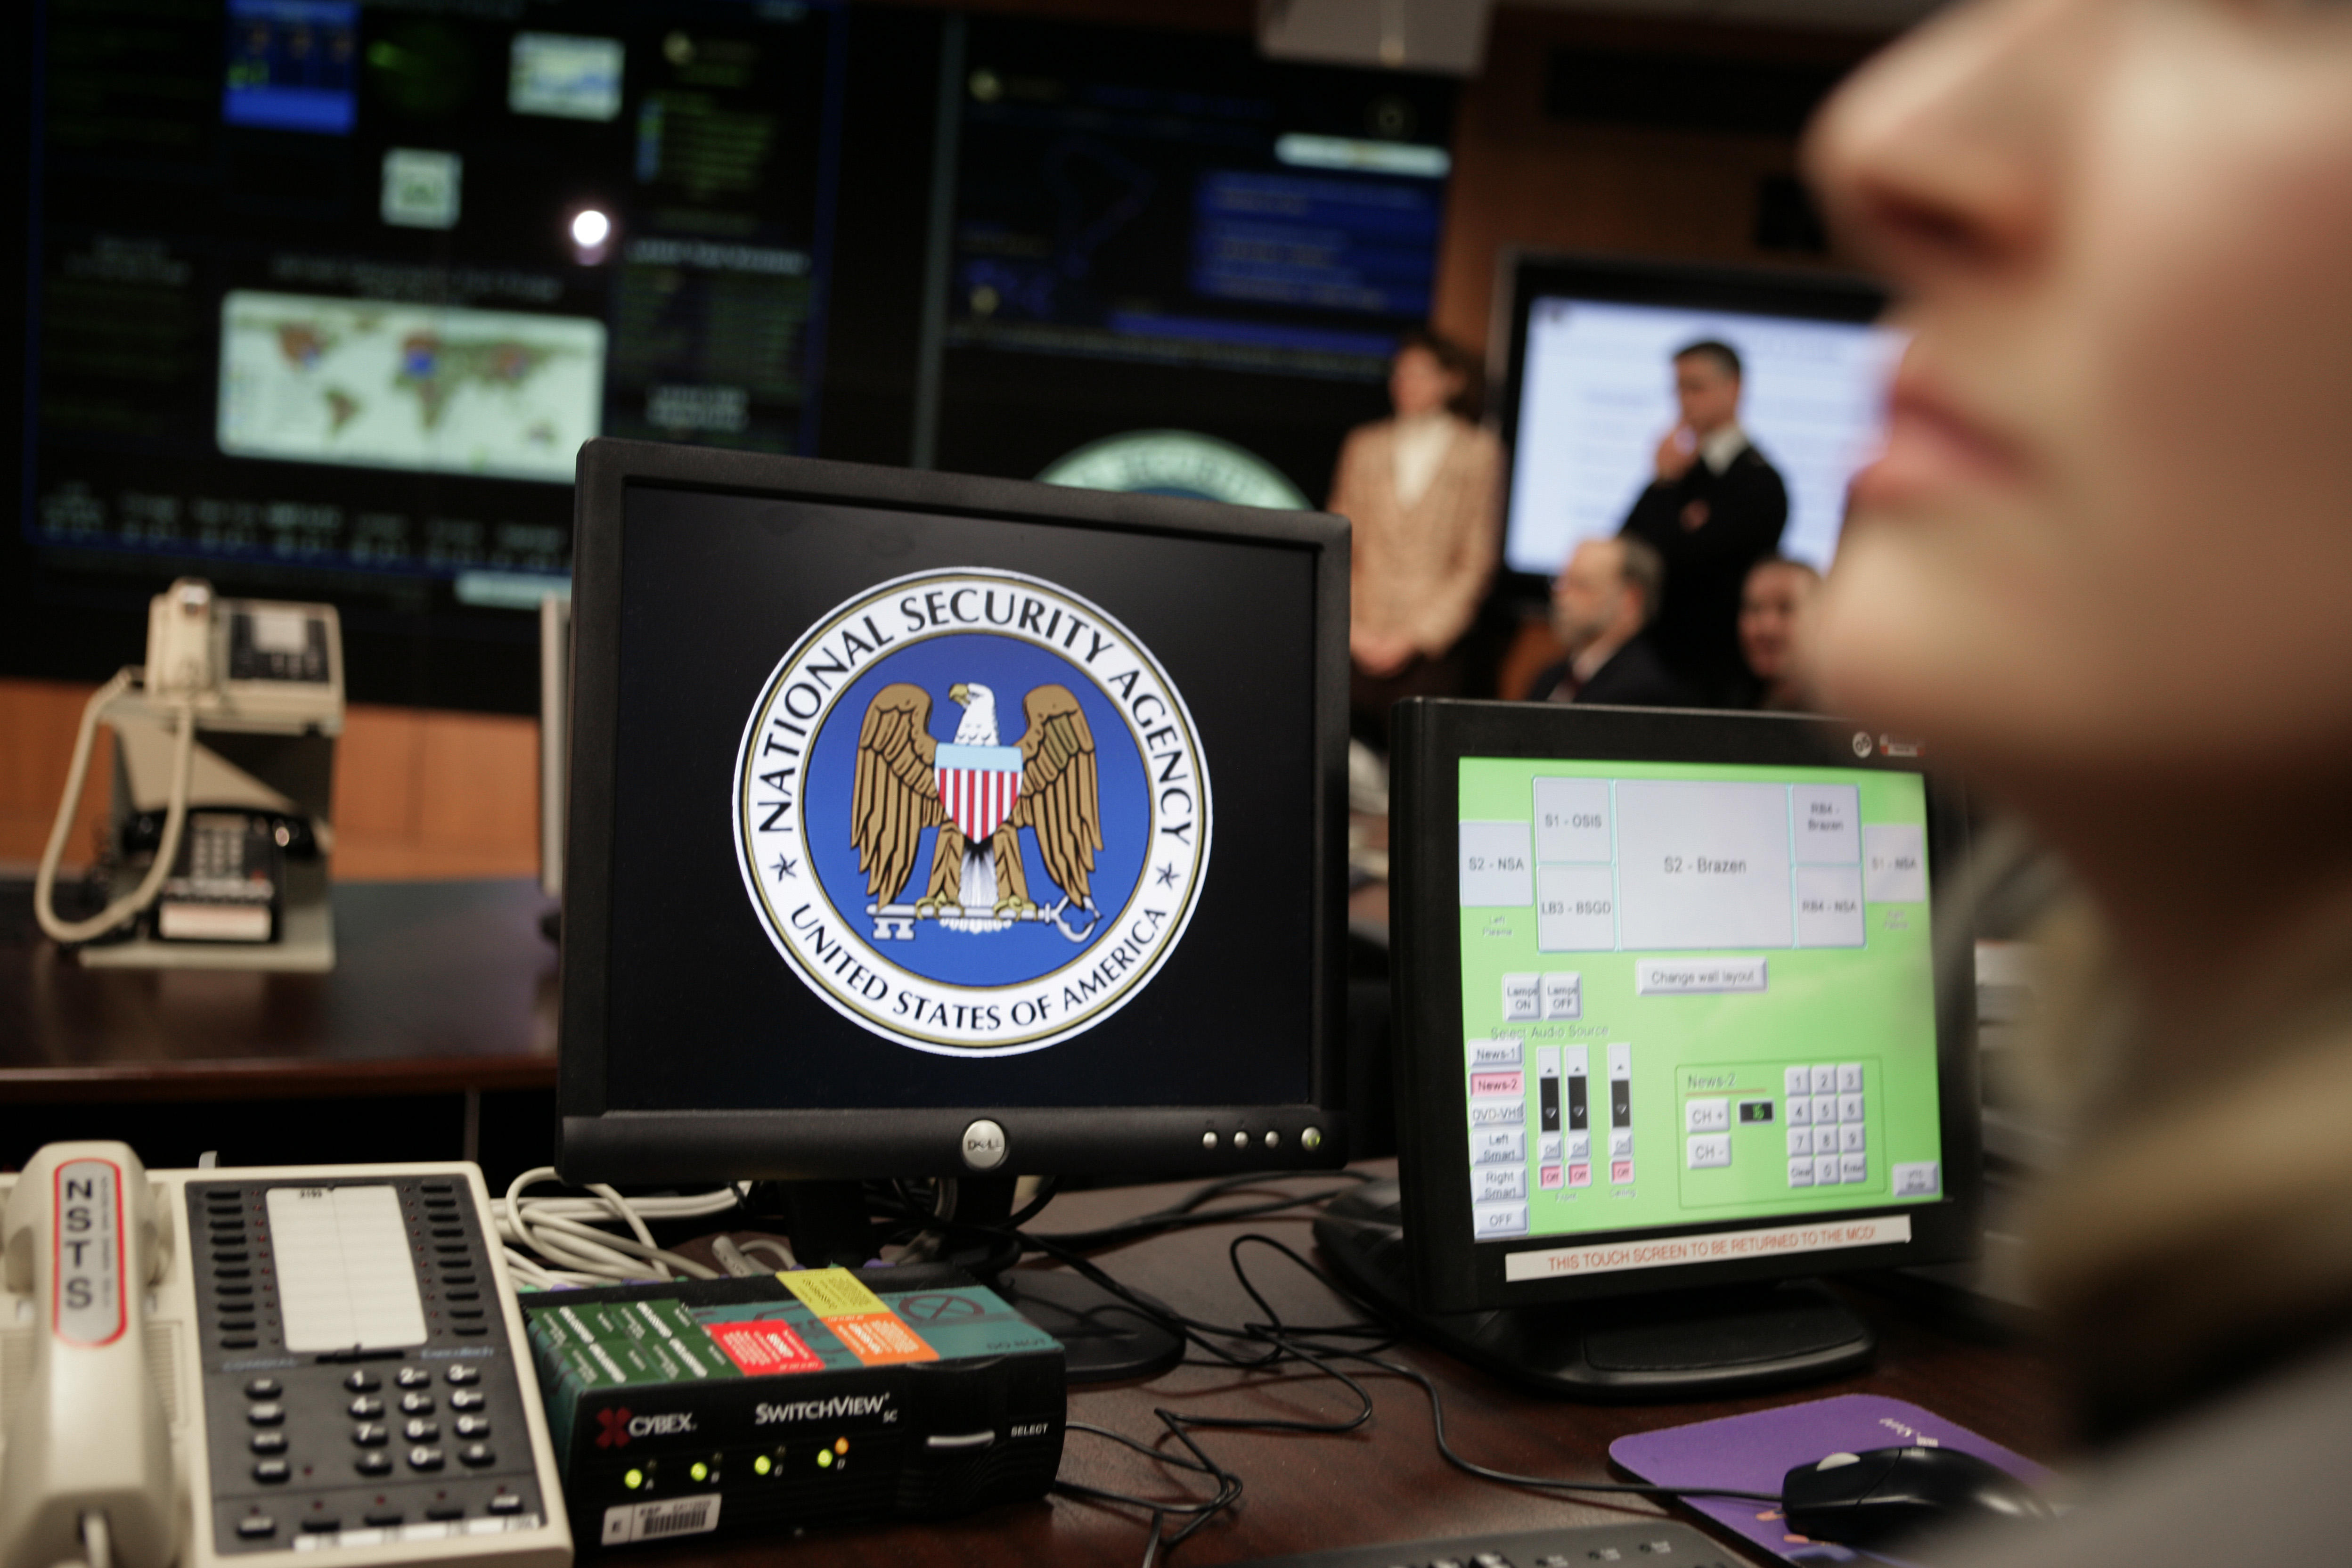 USA - National Security Agency